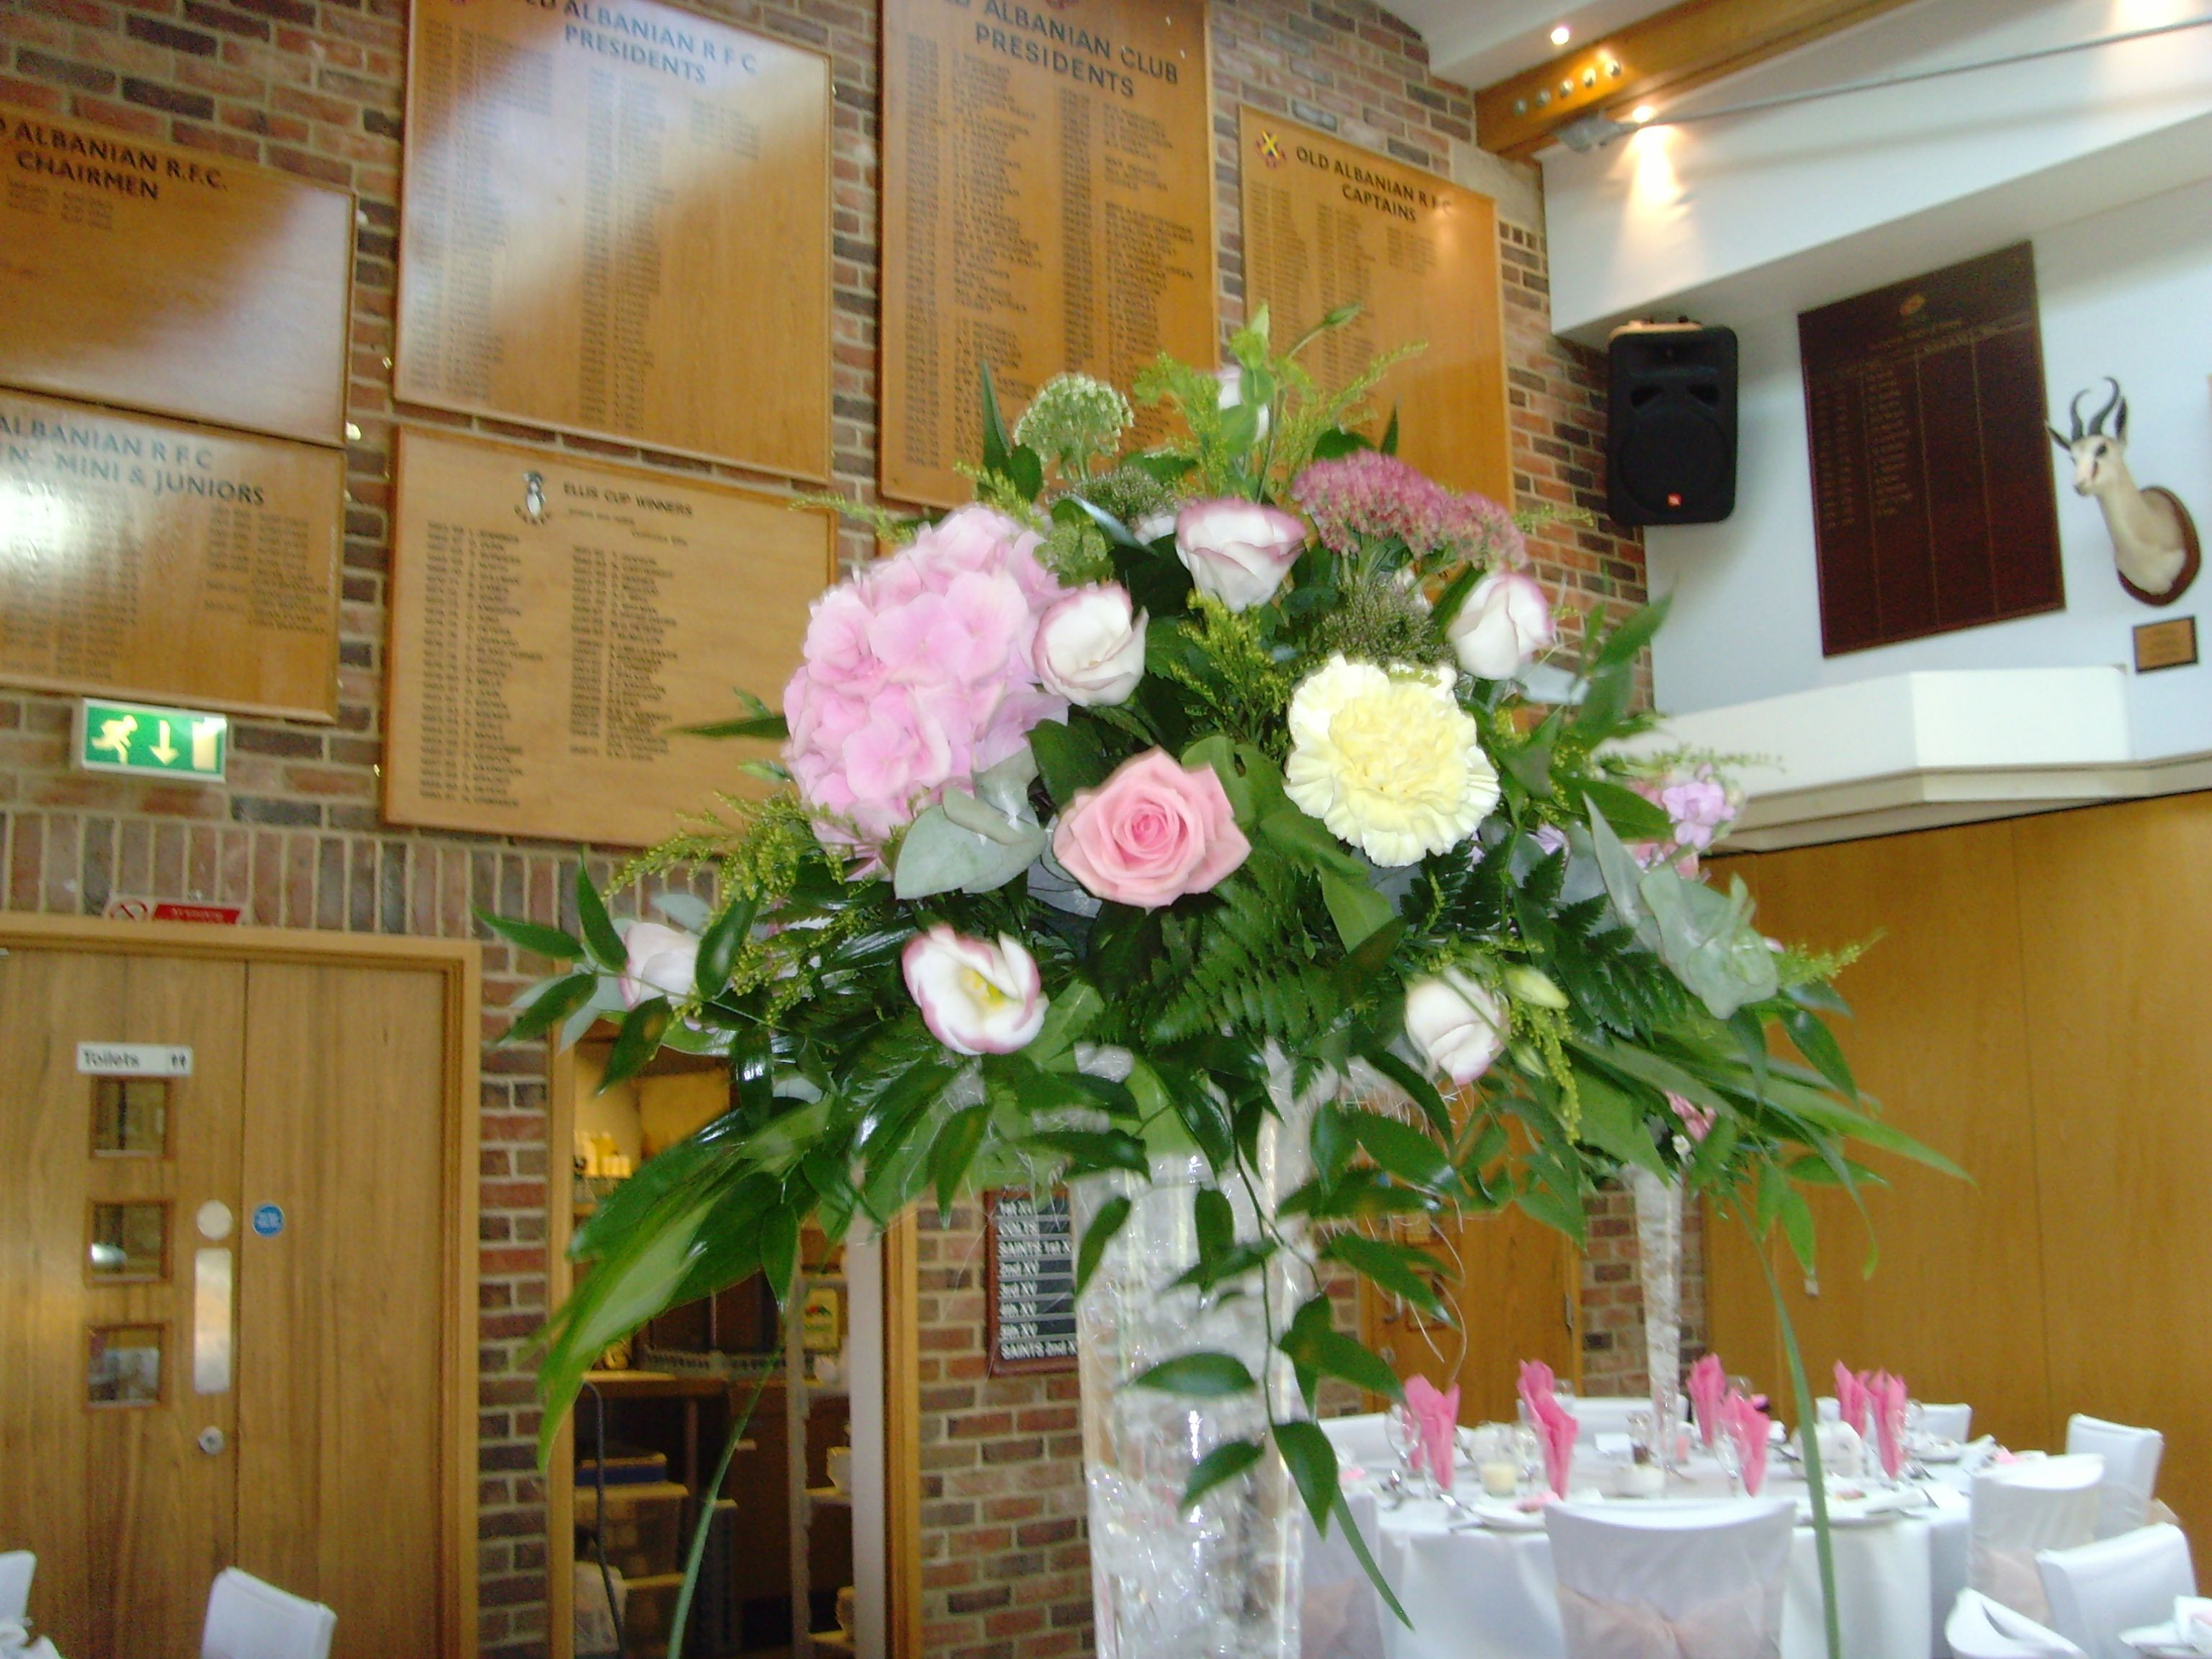 28 Recommended Tall Flower Vases 2021 free download tall flower vases of tall glass vases with posy on top they would be more of an in tall glass vases with posy on top they would be more of an obstruction then